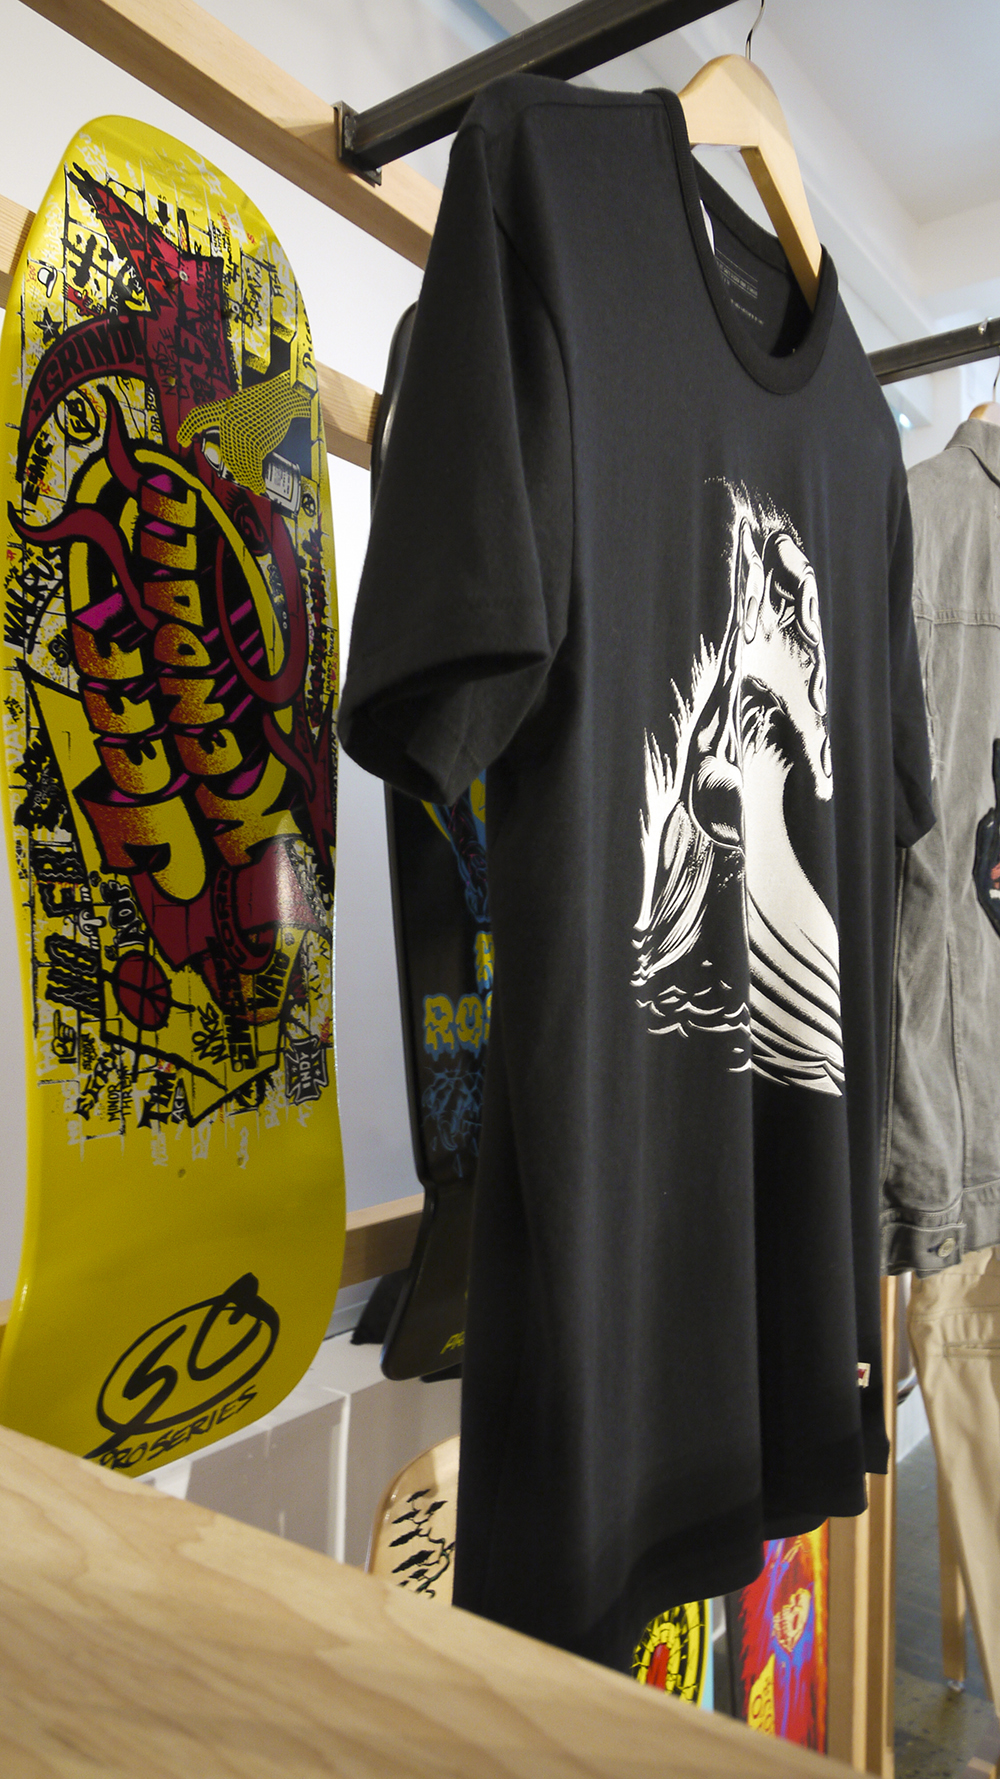 Jim Phillips Skate Deck T-Shirt Designs